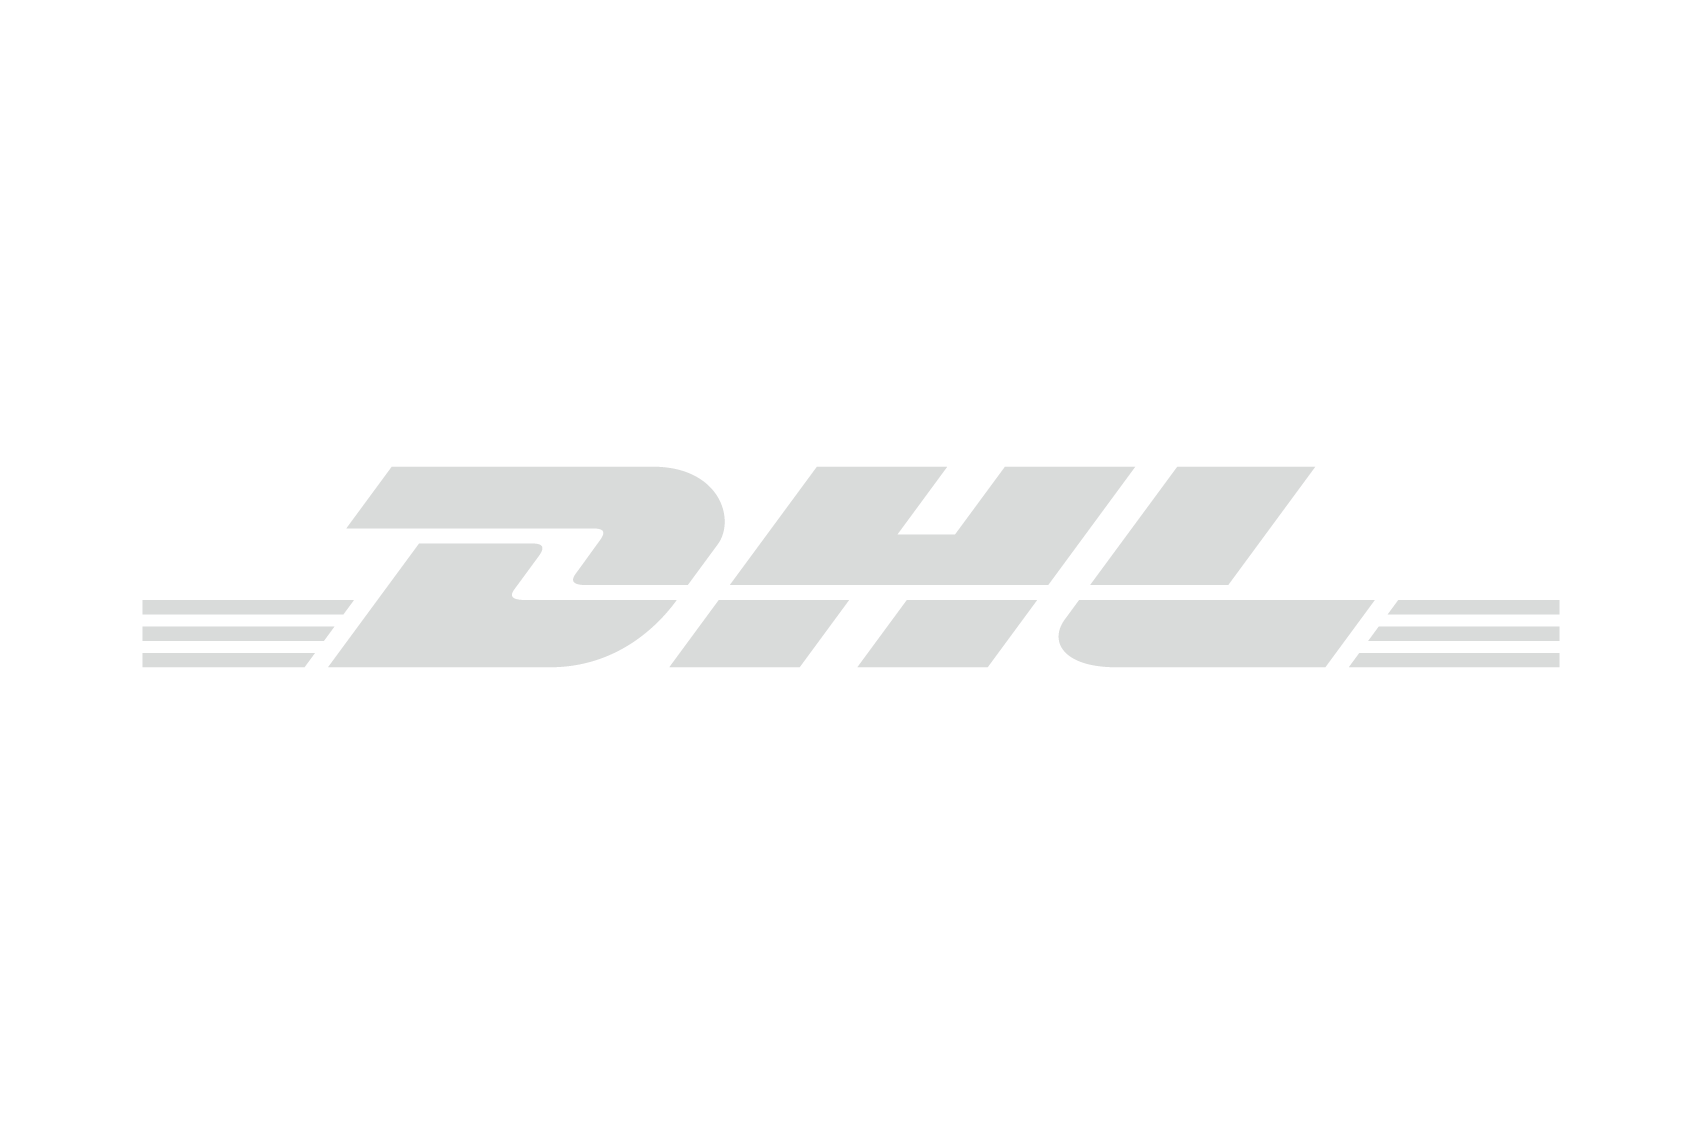 https://www.trtr.ee/wp-content/uploads/2021/03/dhl-logo_hall_300x200.png